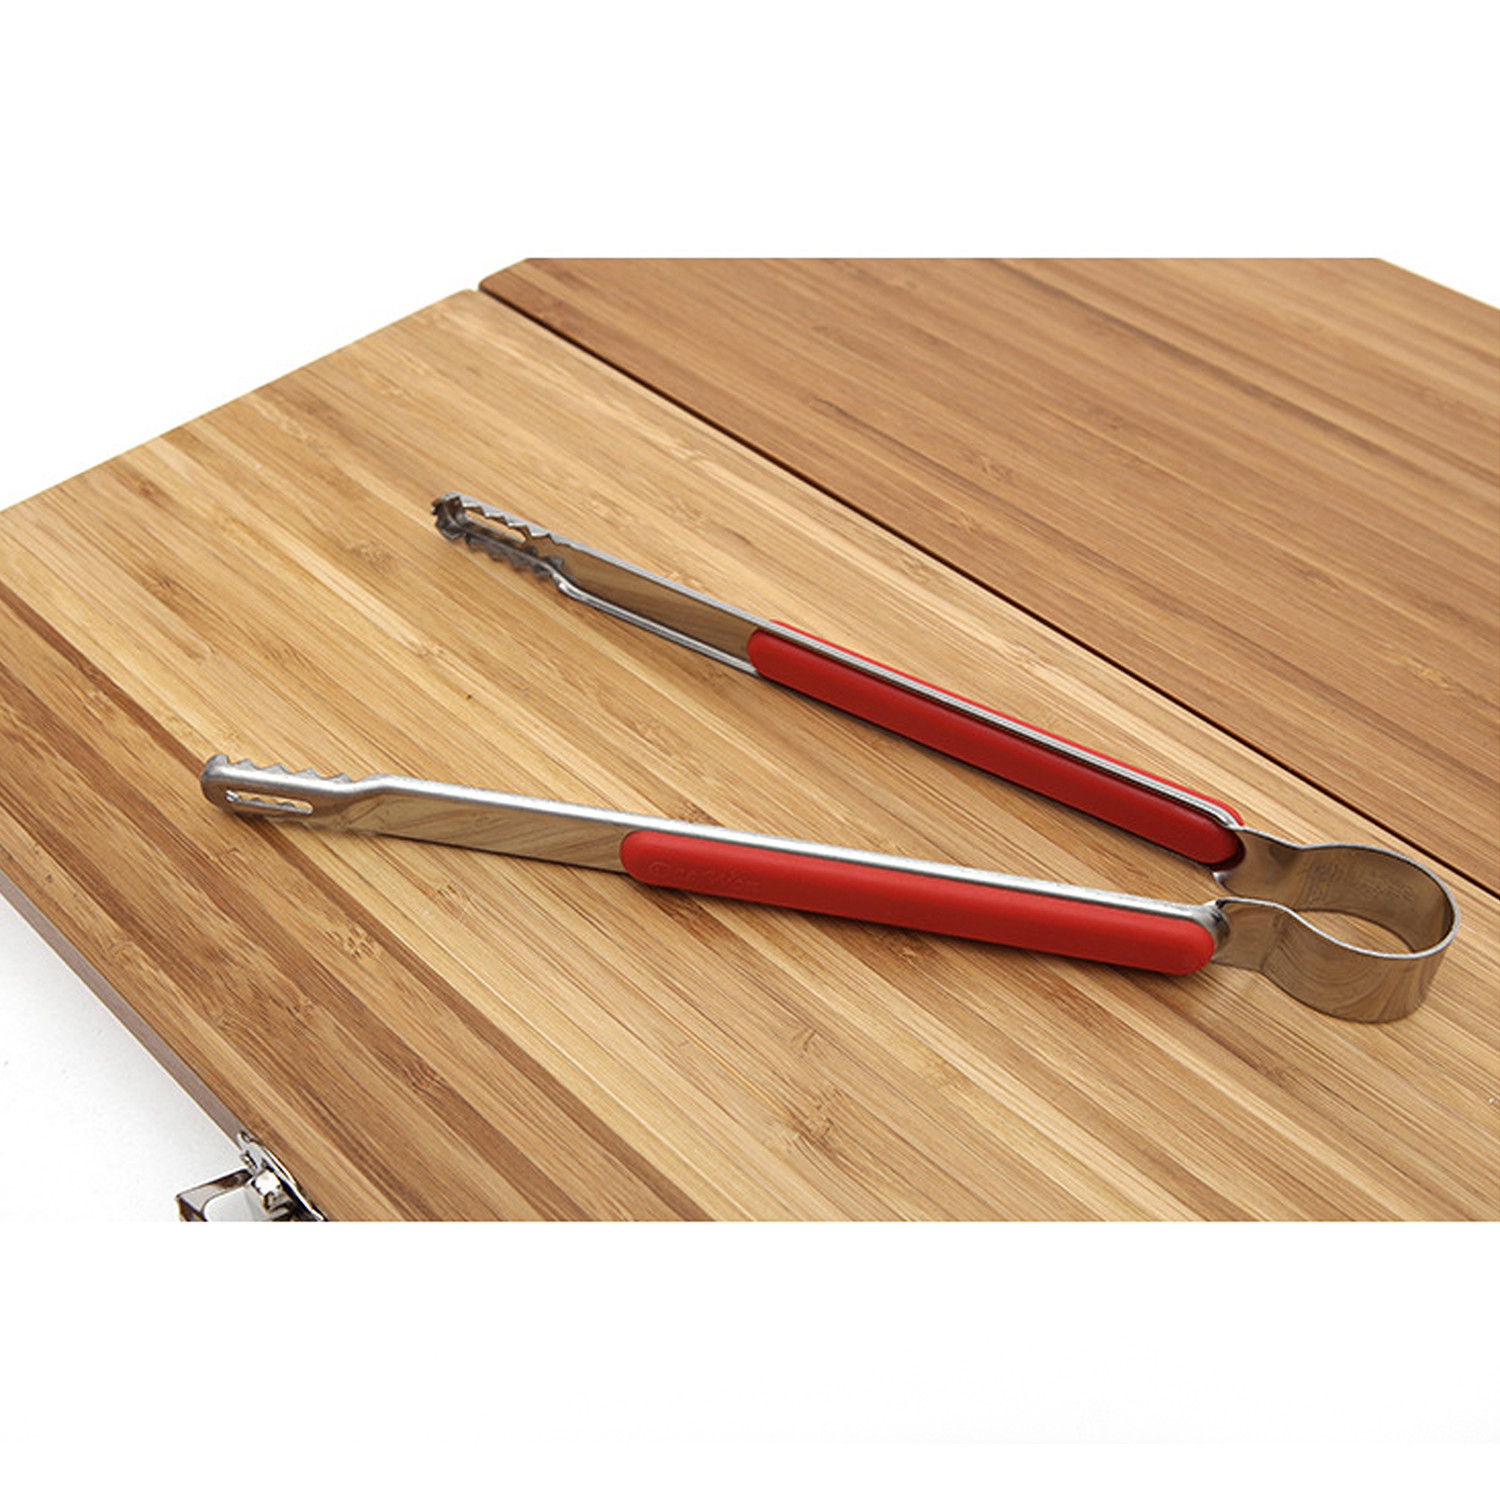 Chopping Knife Set Outdoor Cutting Board Knife Set Wood Invictus Edge